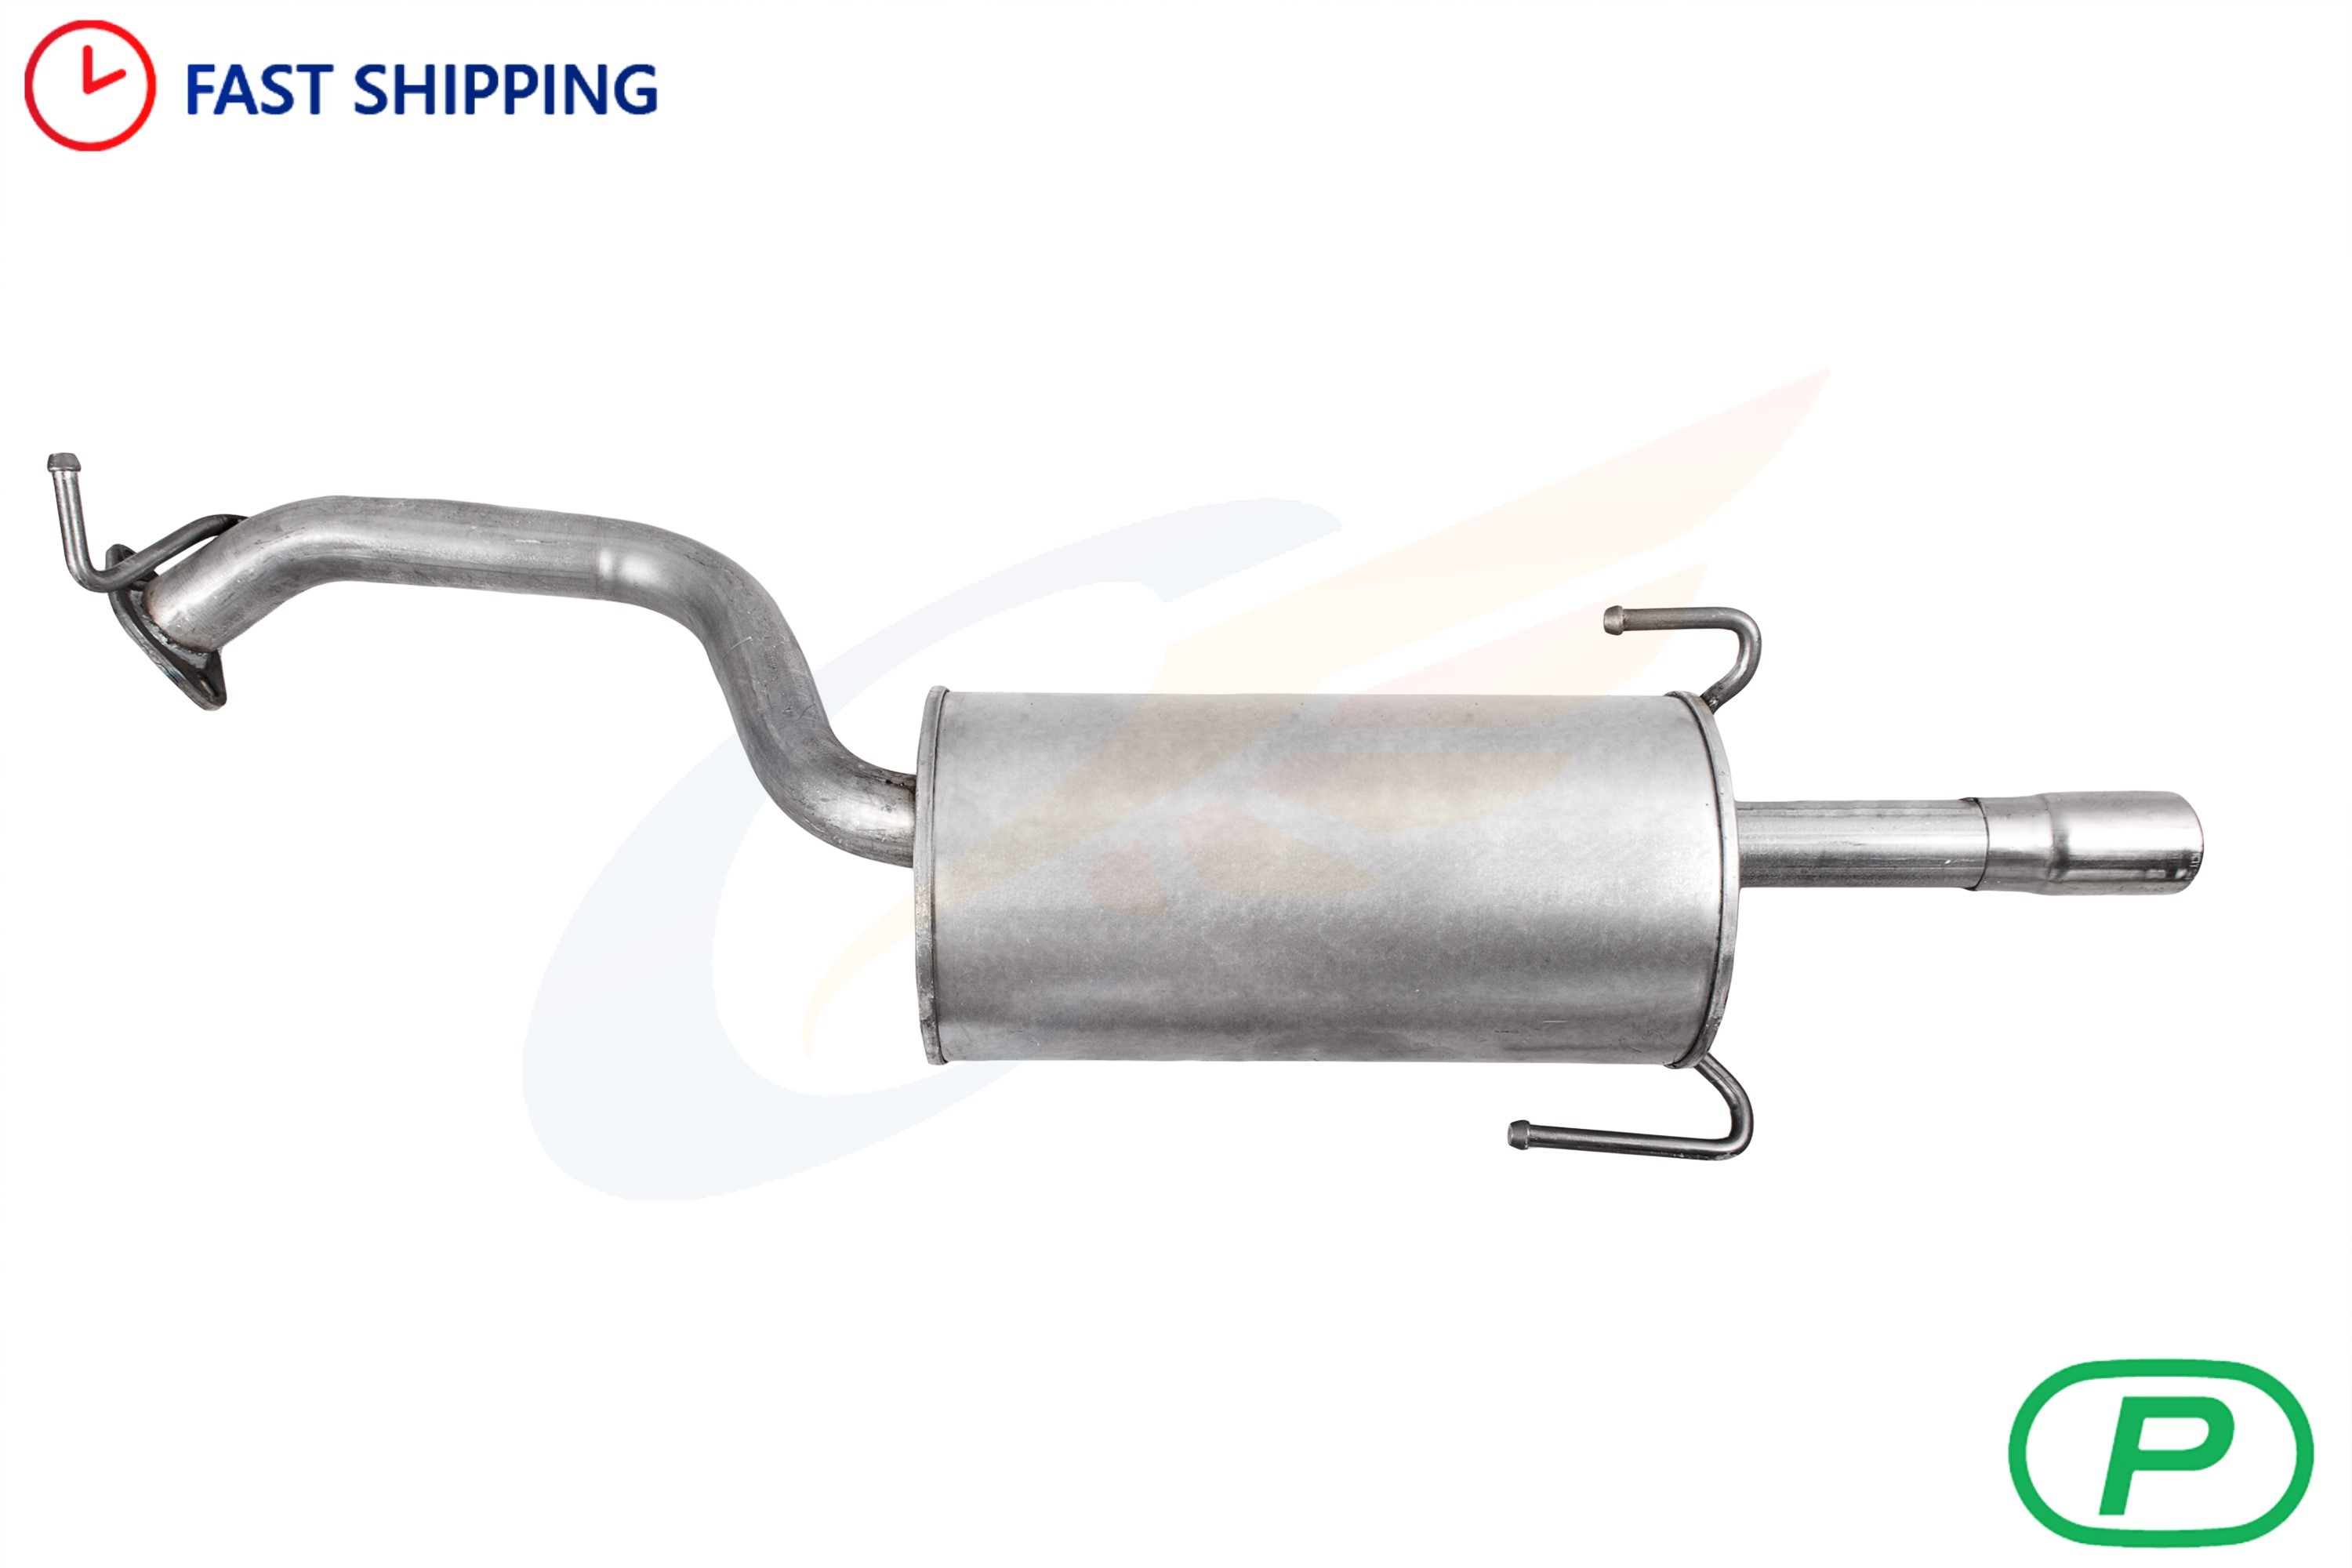 Rear Exhaust Box Replacement  For Subaru Legacy 2.0 1998-2003 Estate